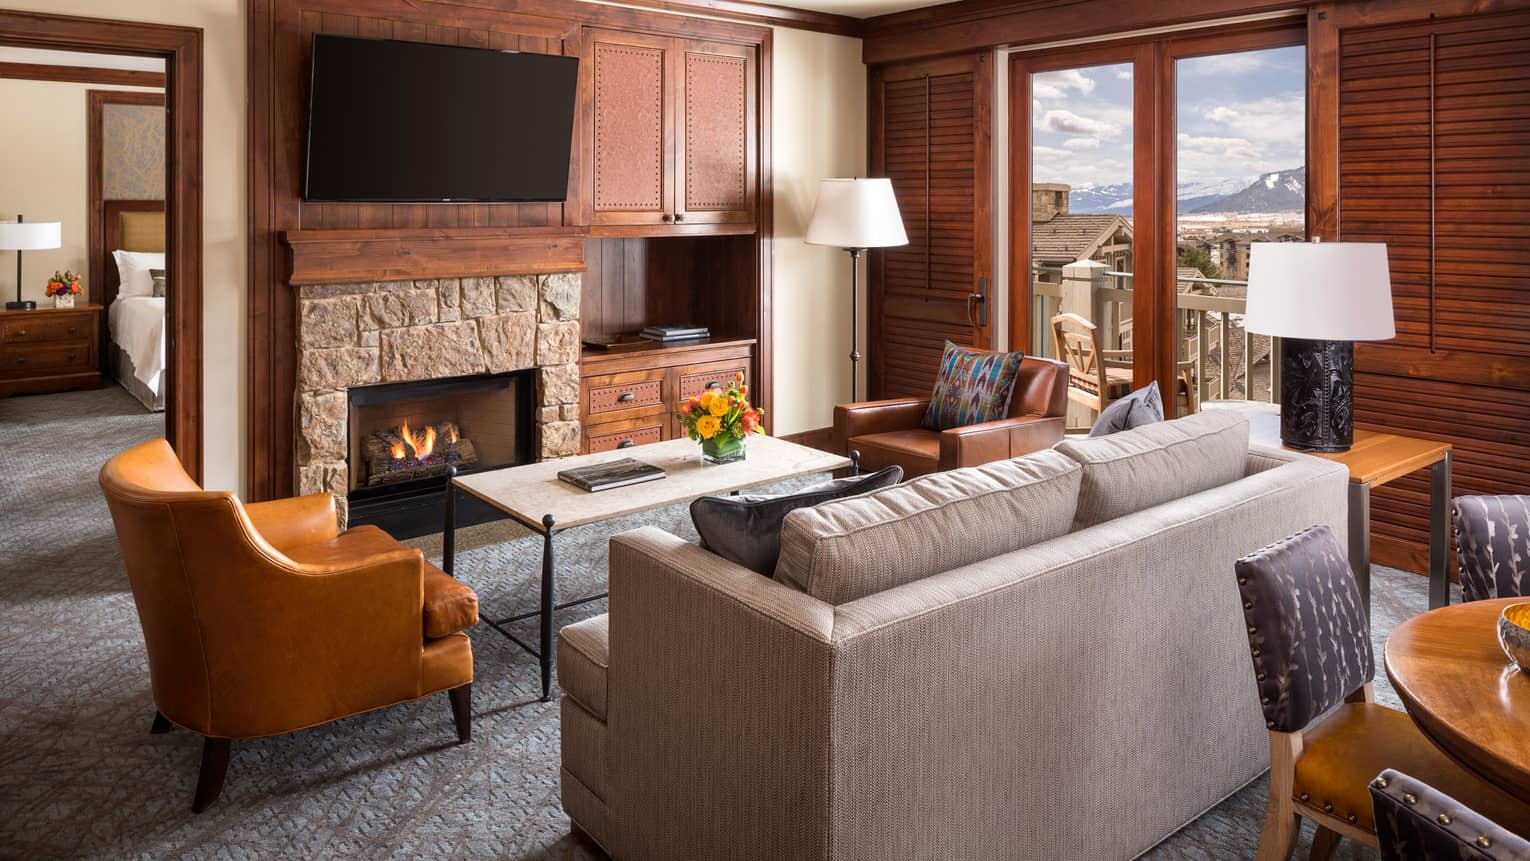 Mountain-View Suite back of sofa, orange armchair by stone fireplace and fire, TV, bedroom door